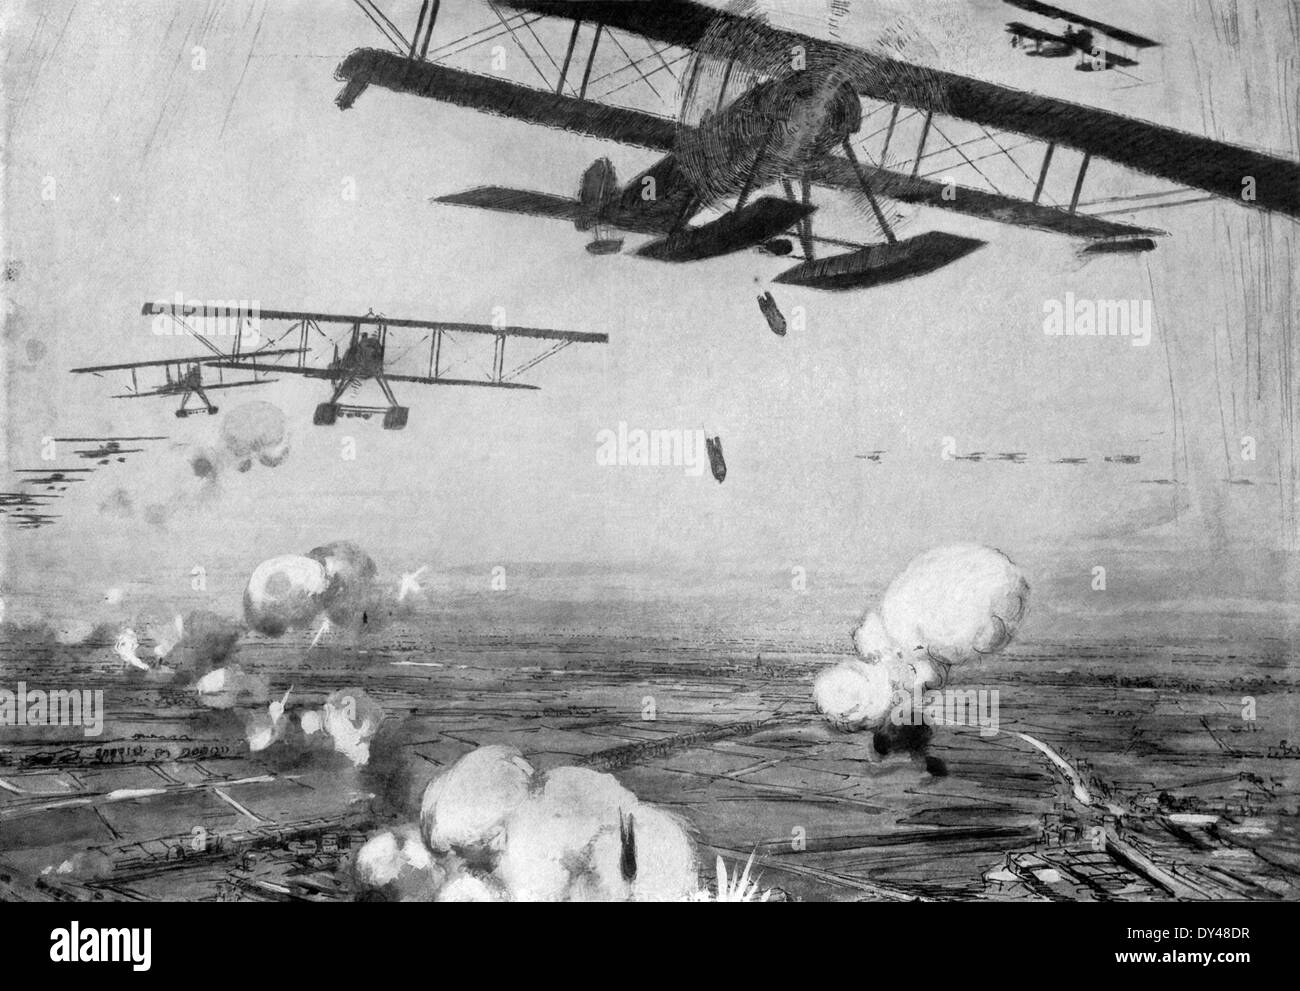 This contemporary illustration shows German bases in Belgium during World War I being attacked by Allied planes. - Stock Image